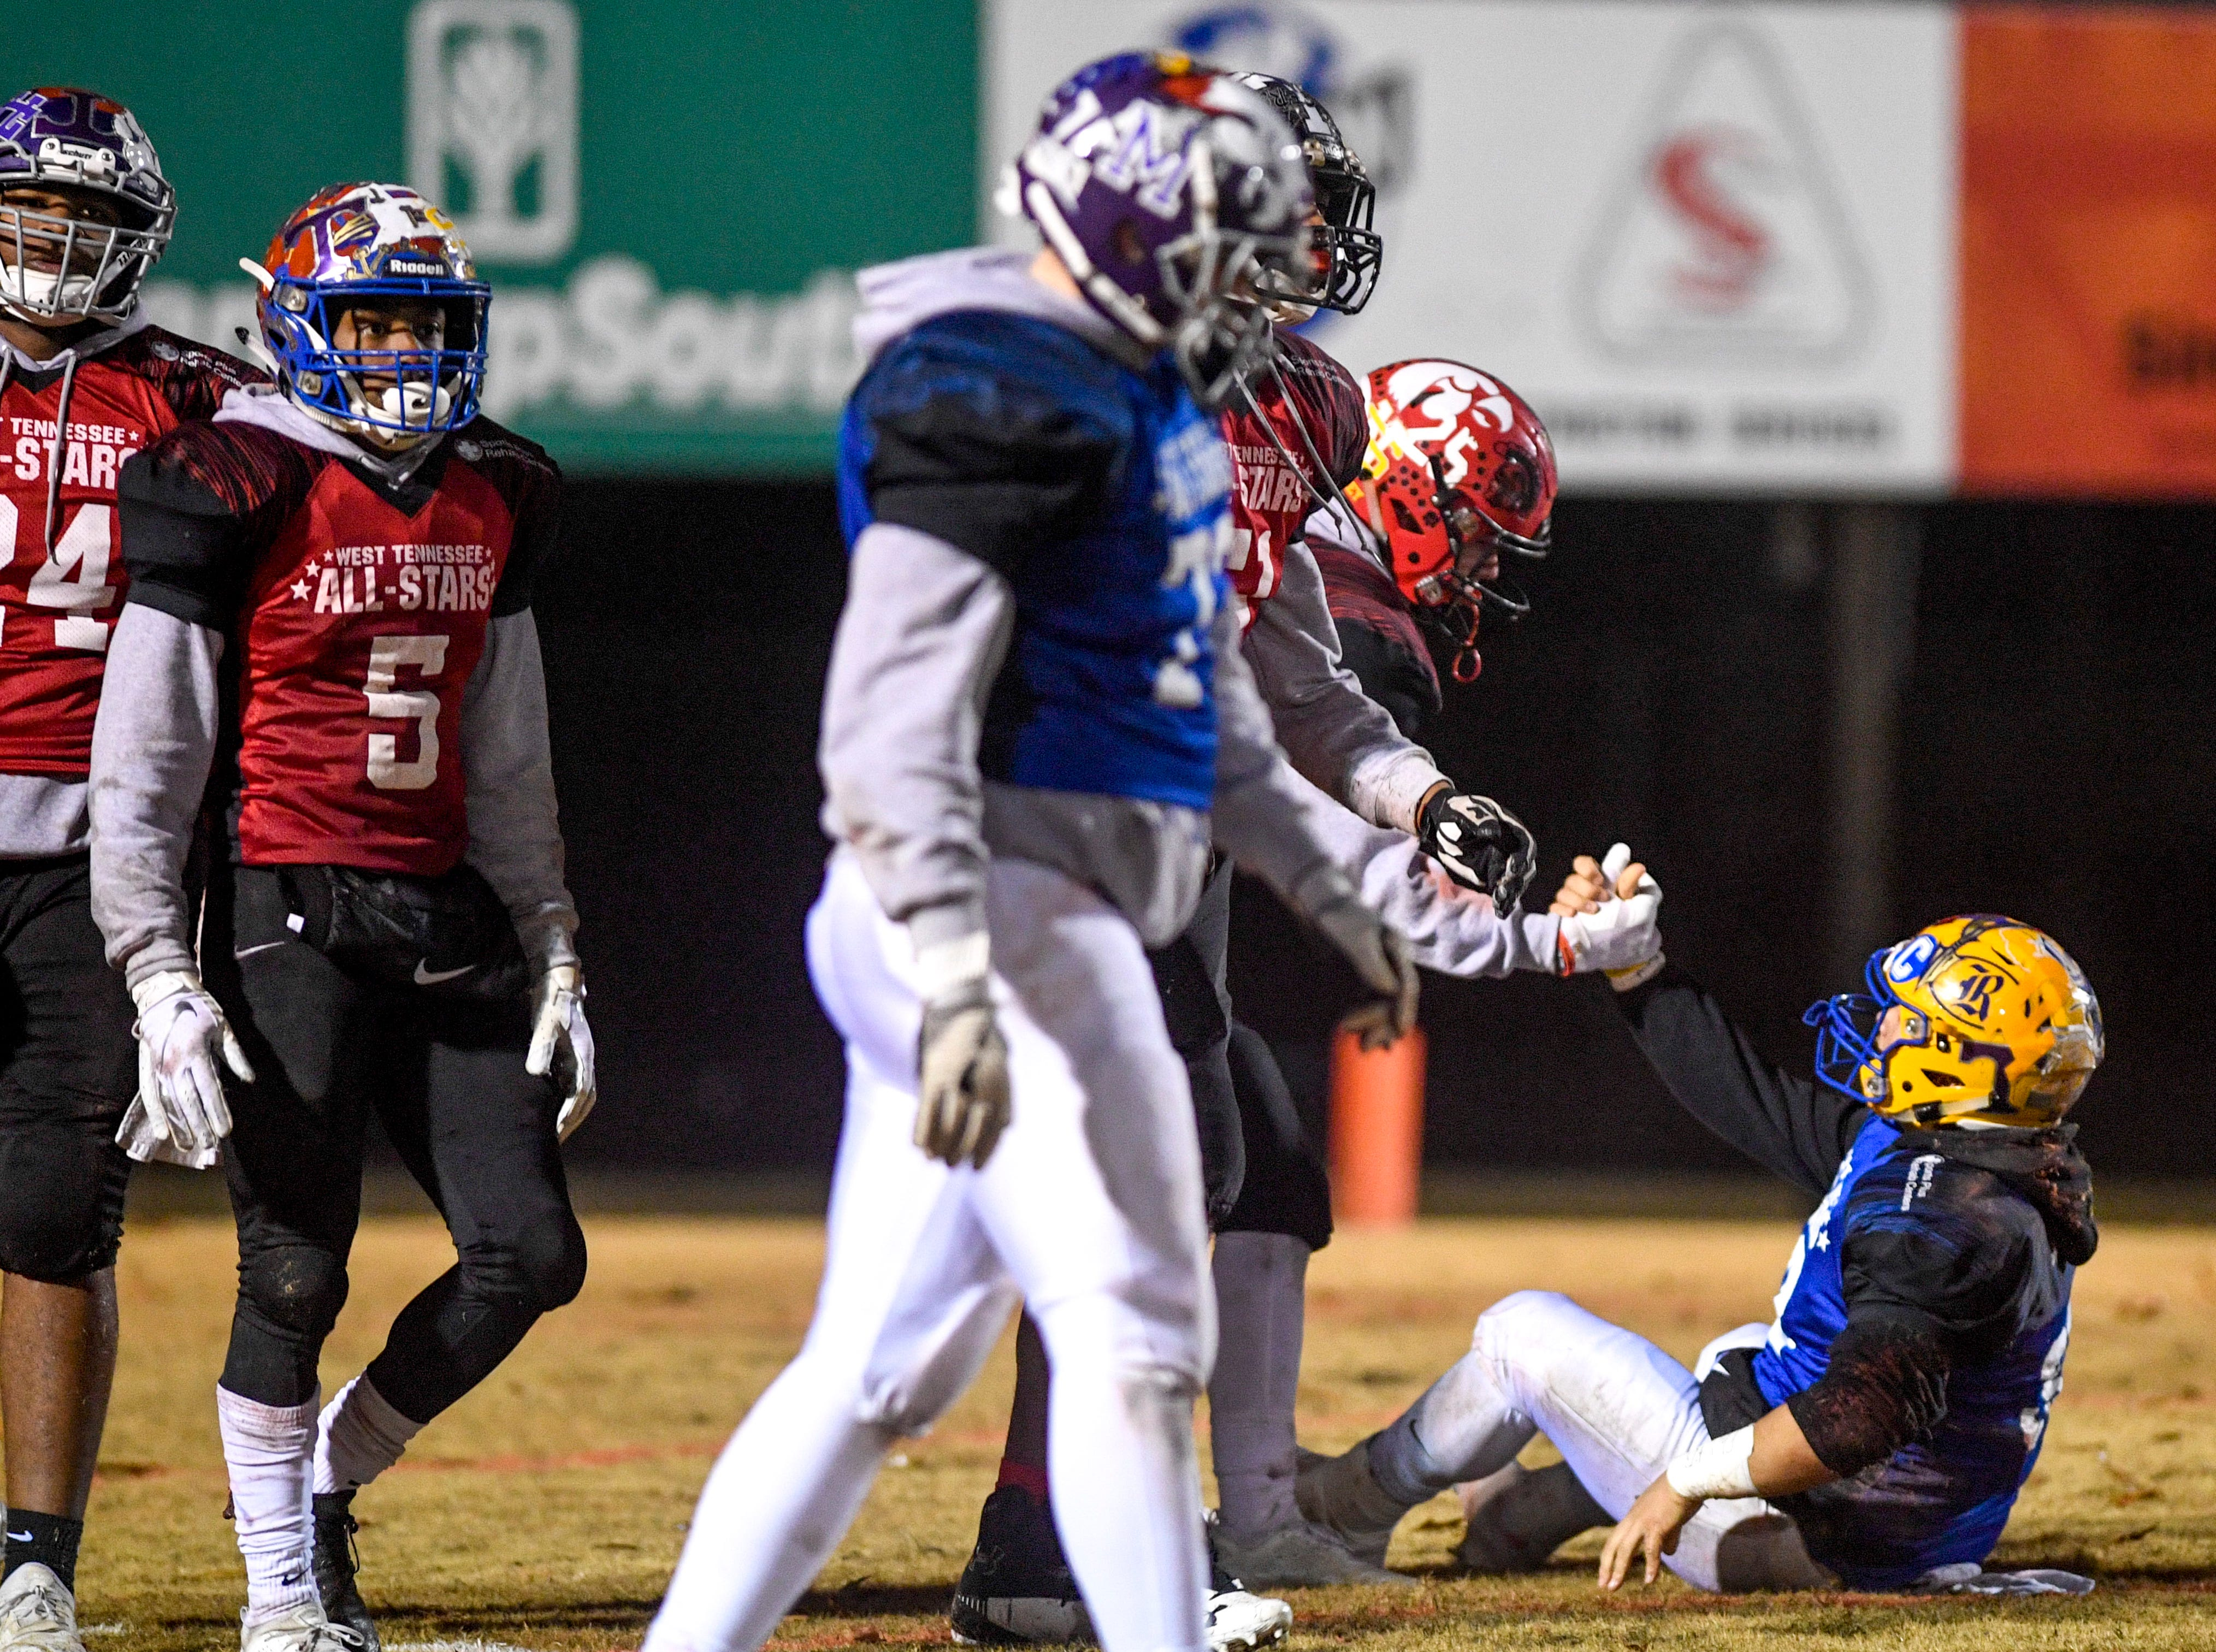 Players help up Riverside's Mason Montgomery (54) during the West Tennessee All-Star football game at University School of Jackson in Jackson, Tenn., on Friday, Dec. 7, 2018.